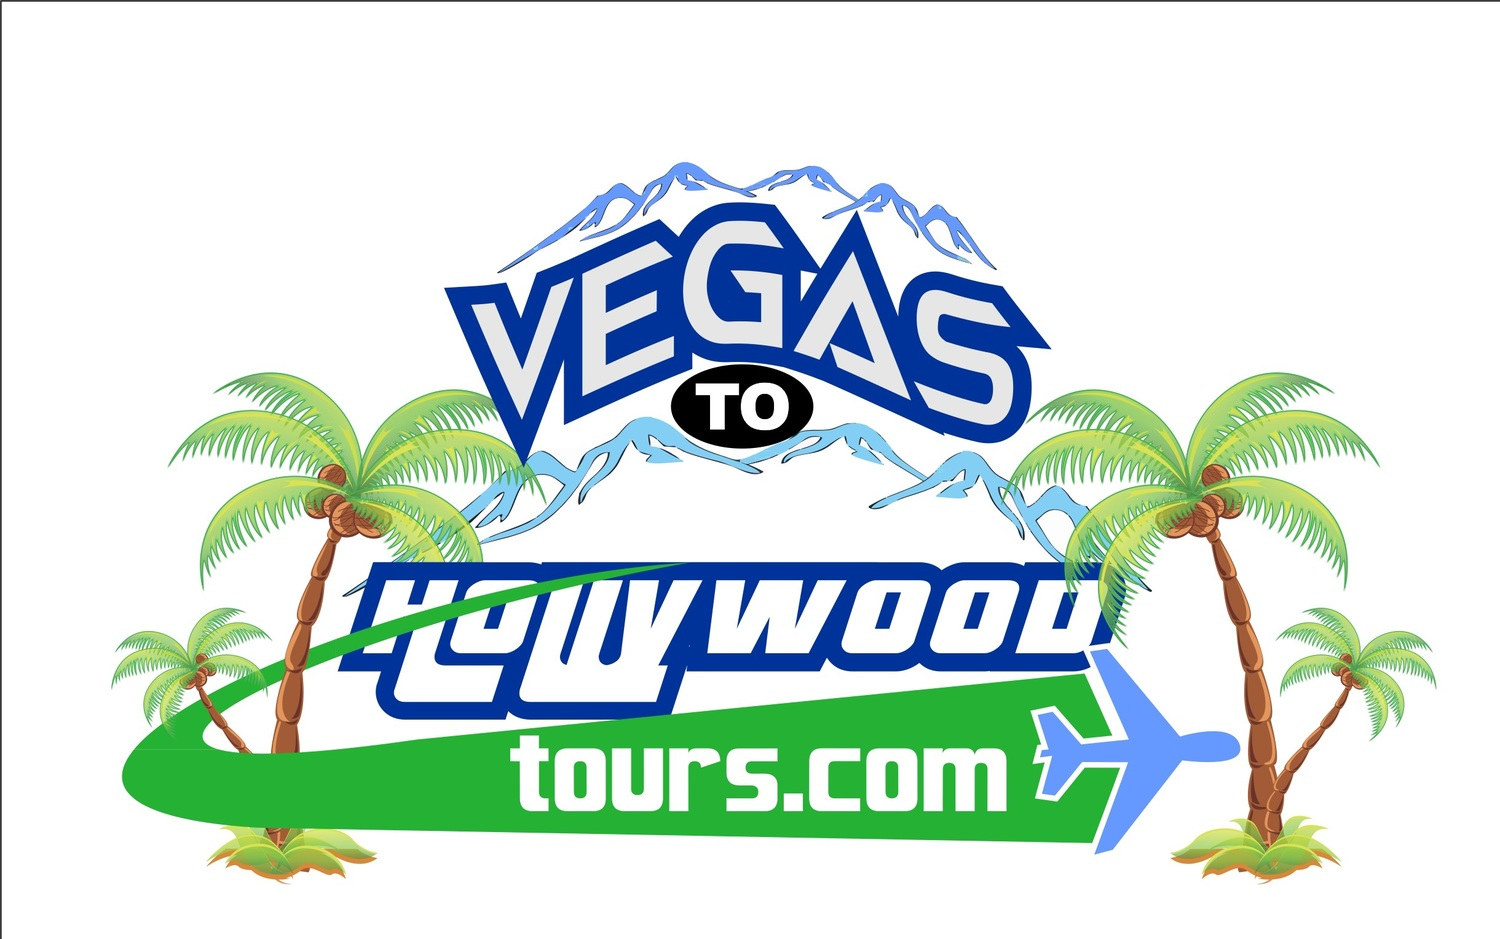 Vegas To Hollywood Tours